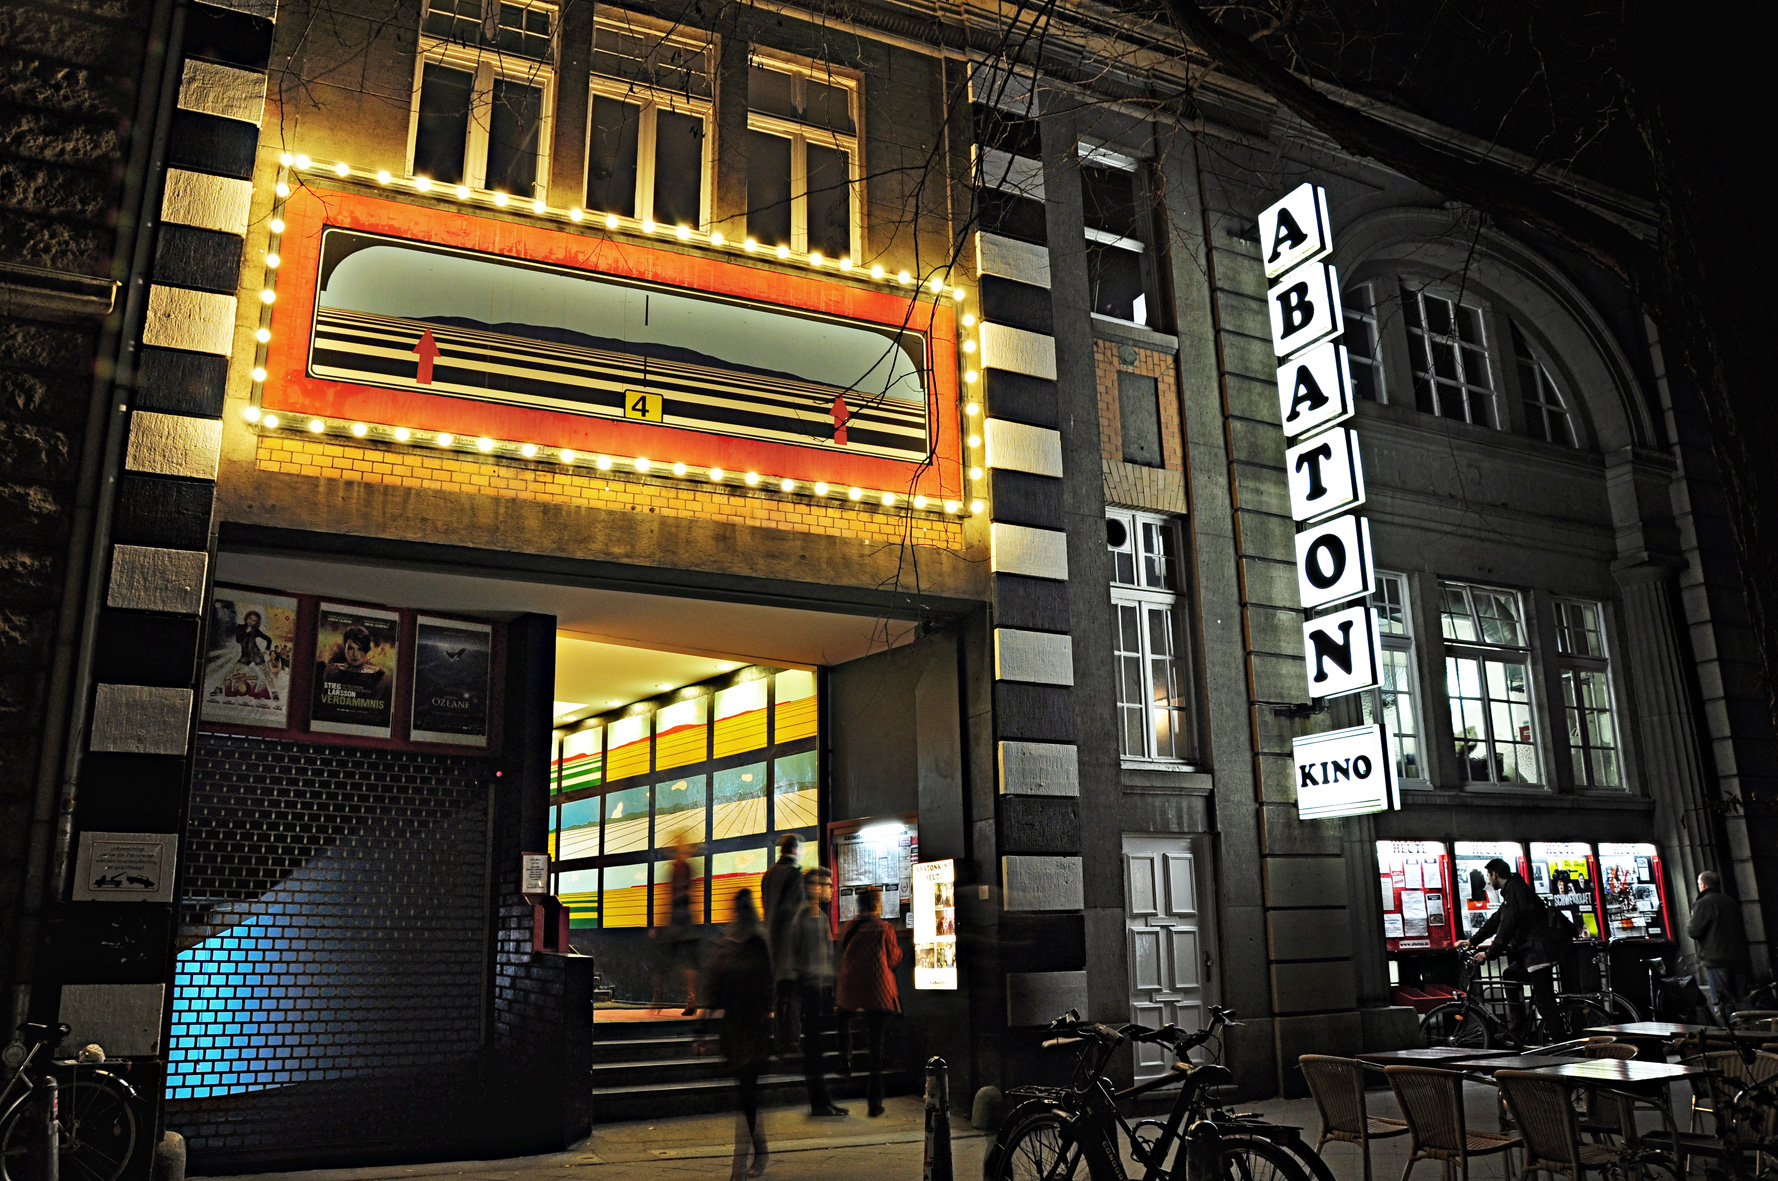 hitch kino neuss frankfurt am main